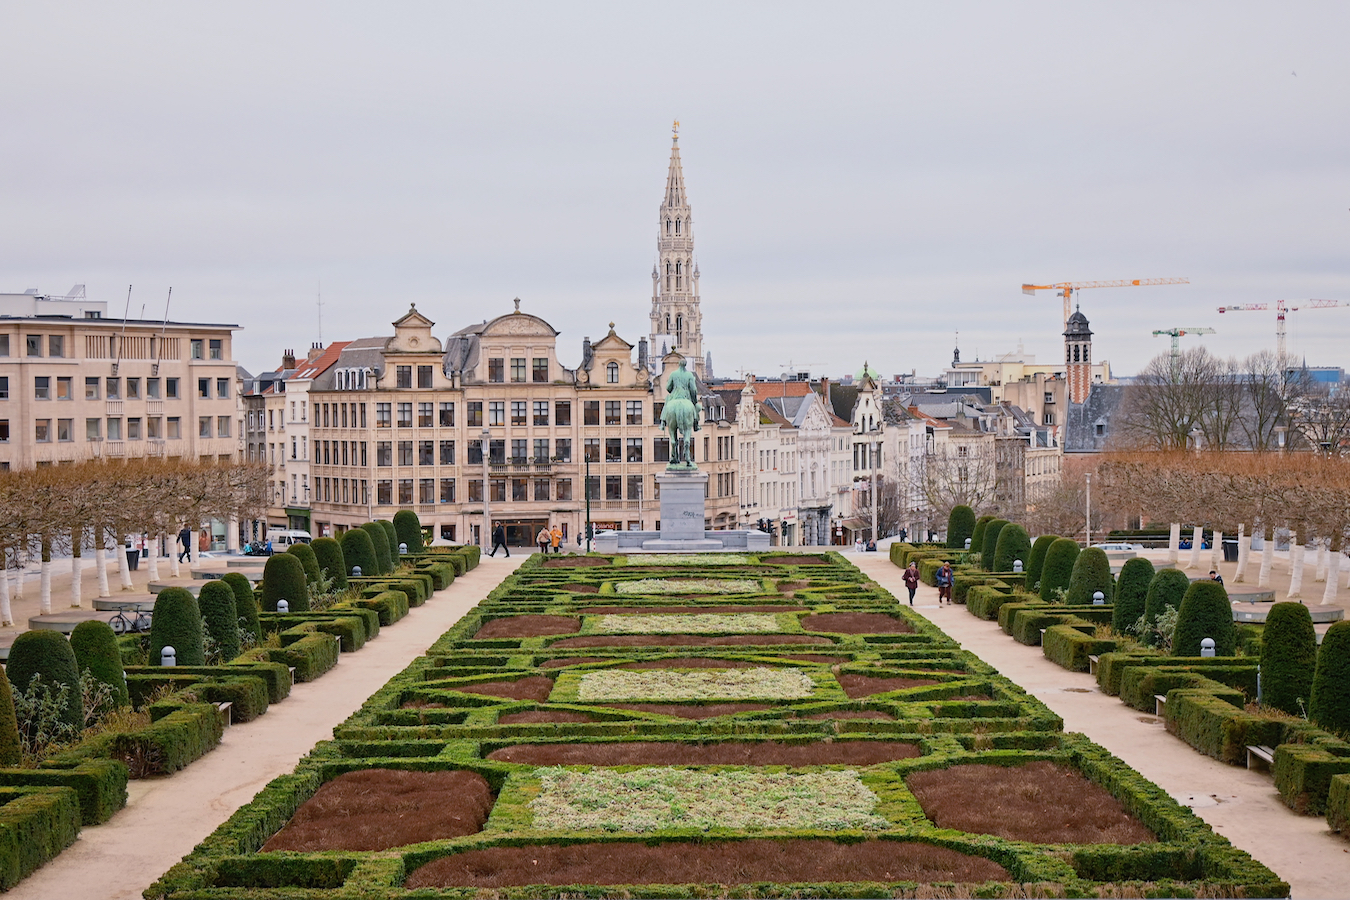 brussels from a city square